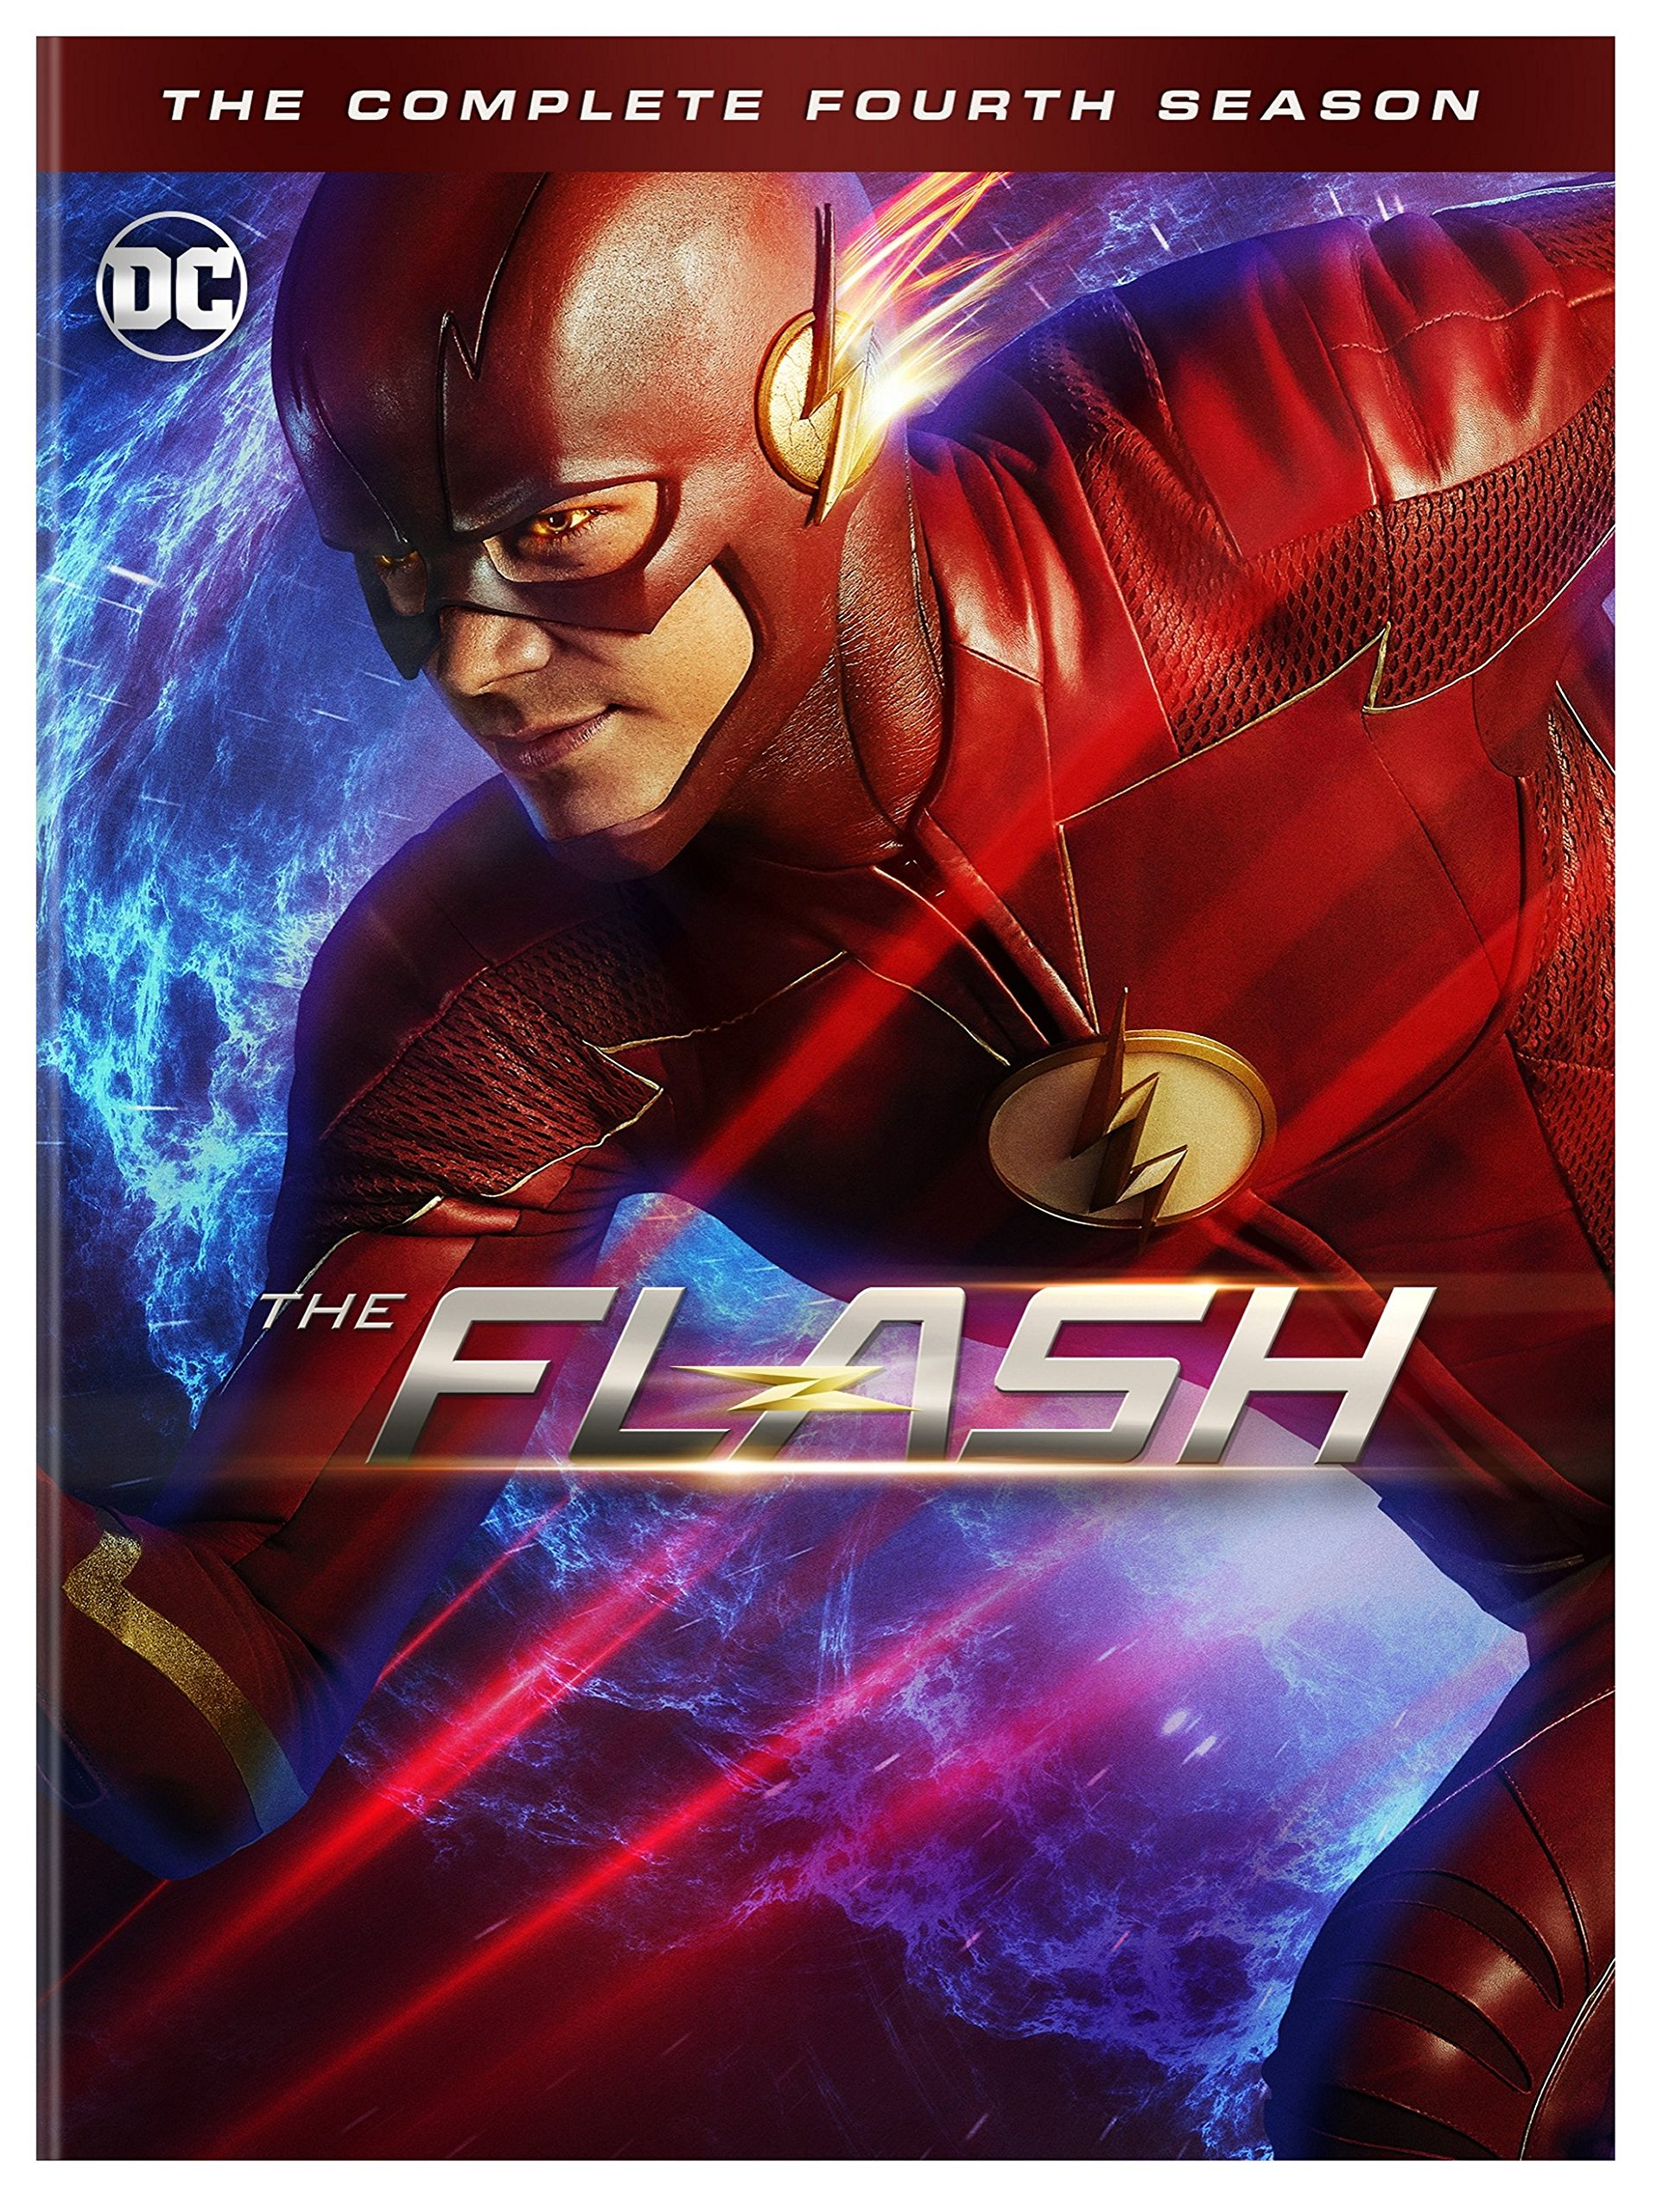 DVD : The Flash: The Complete Fourth Season (dc) (Boxed Set, 5PC)